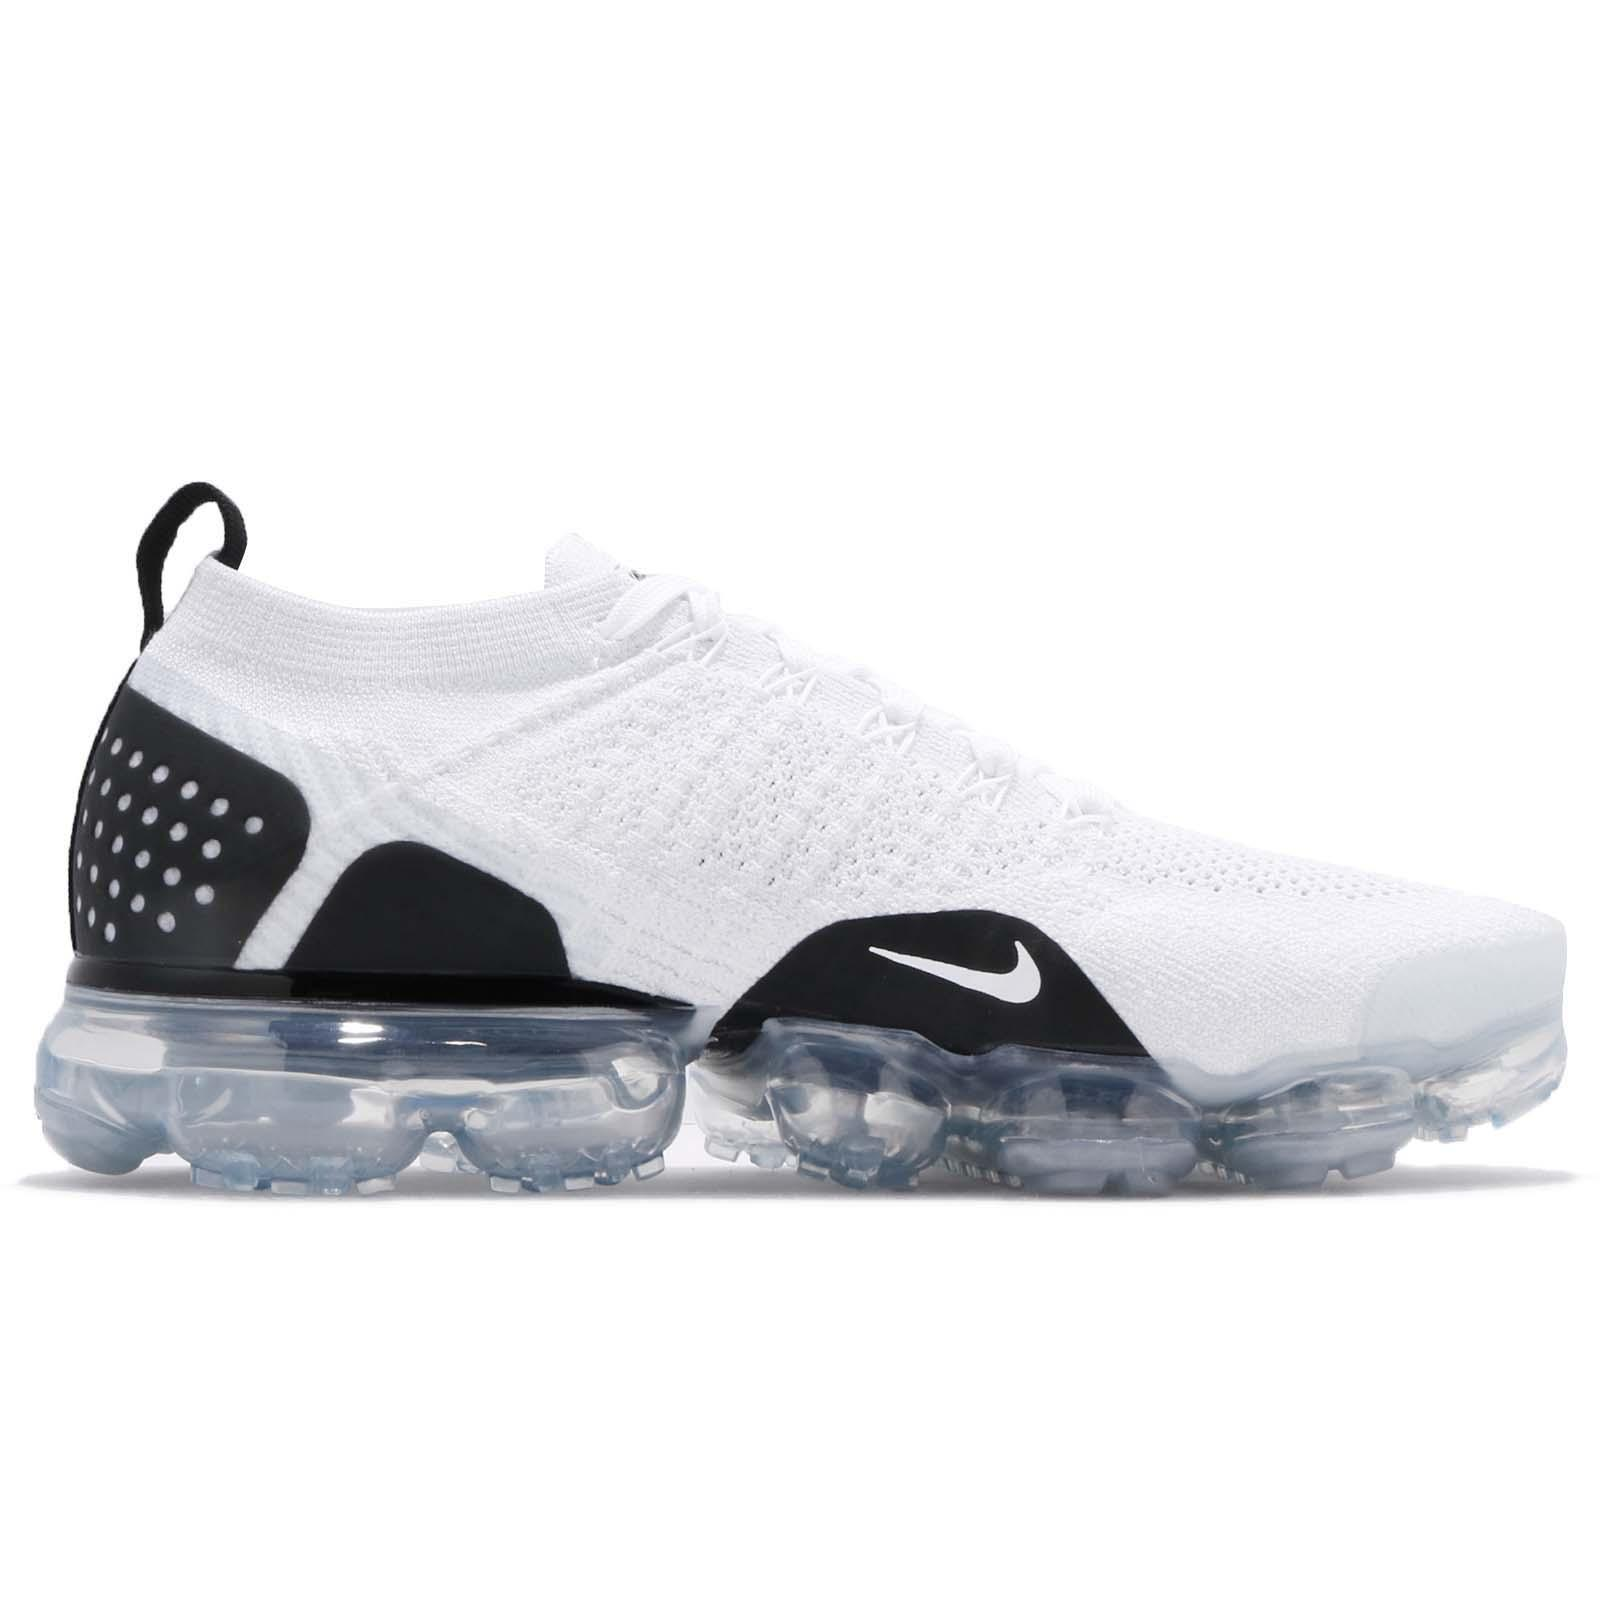 75897c41afb Nike Air Vapormax Flyknit 2.0 Reverse Orca White Black Men Running ...